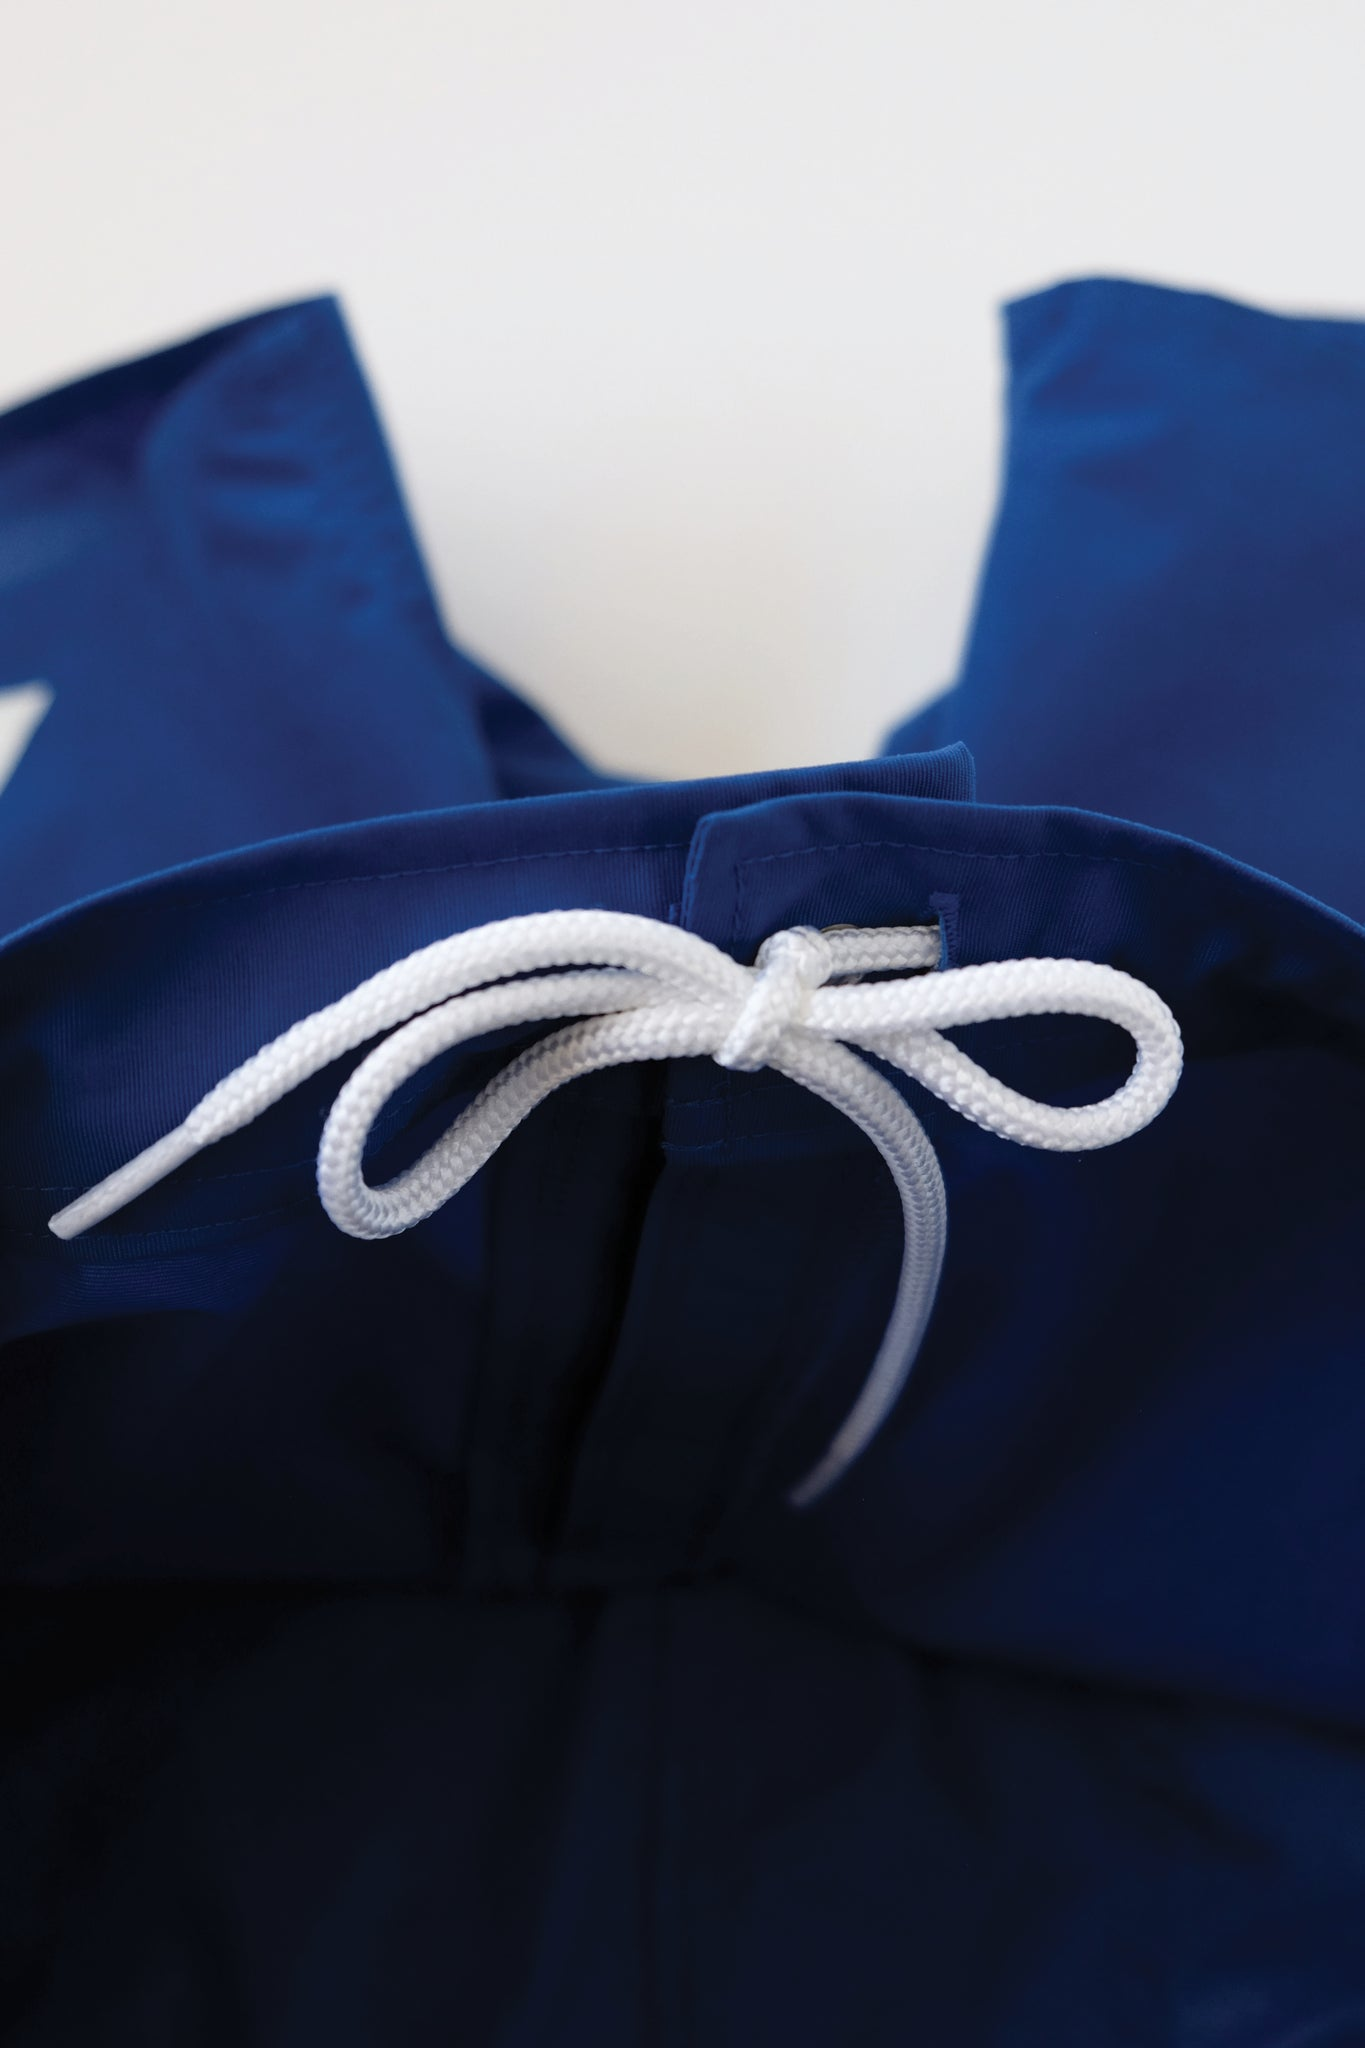 Shorts - Koko Boardshort, Contrast Logo - Royal Blue